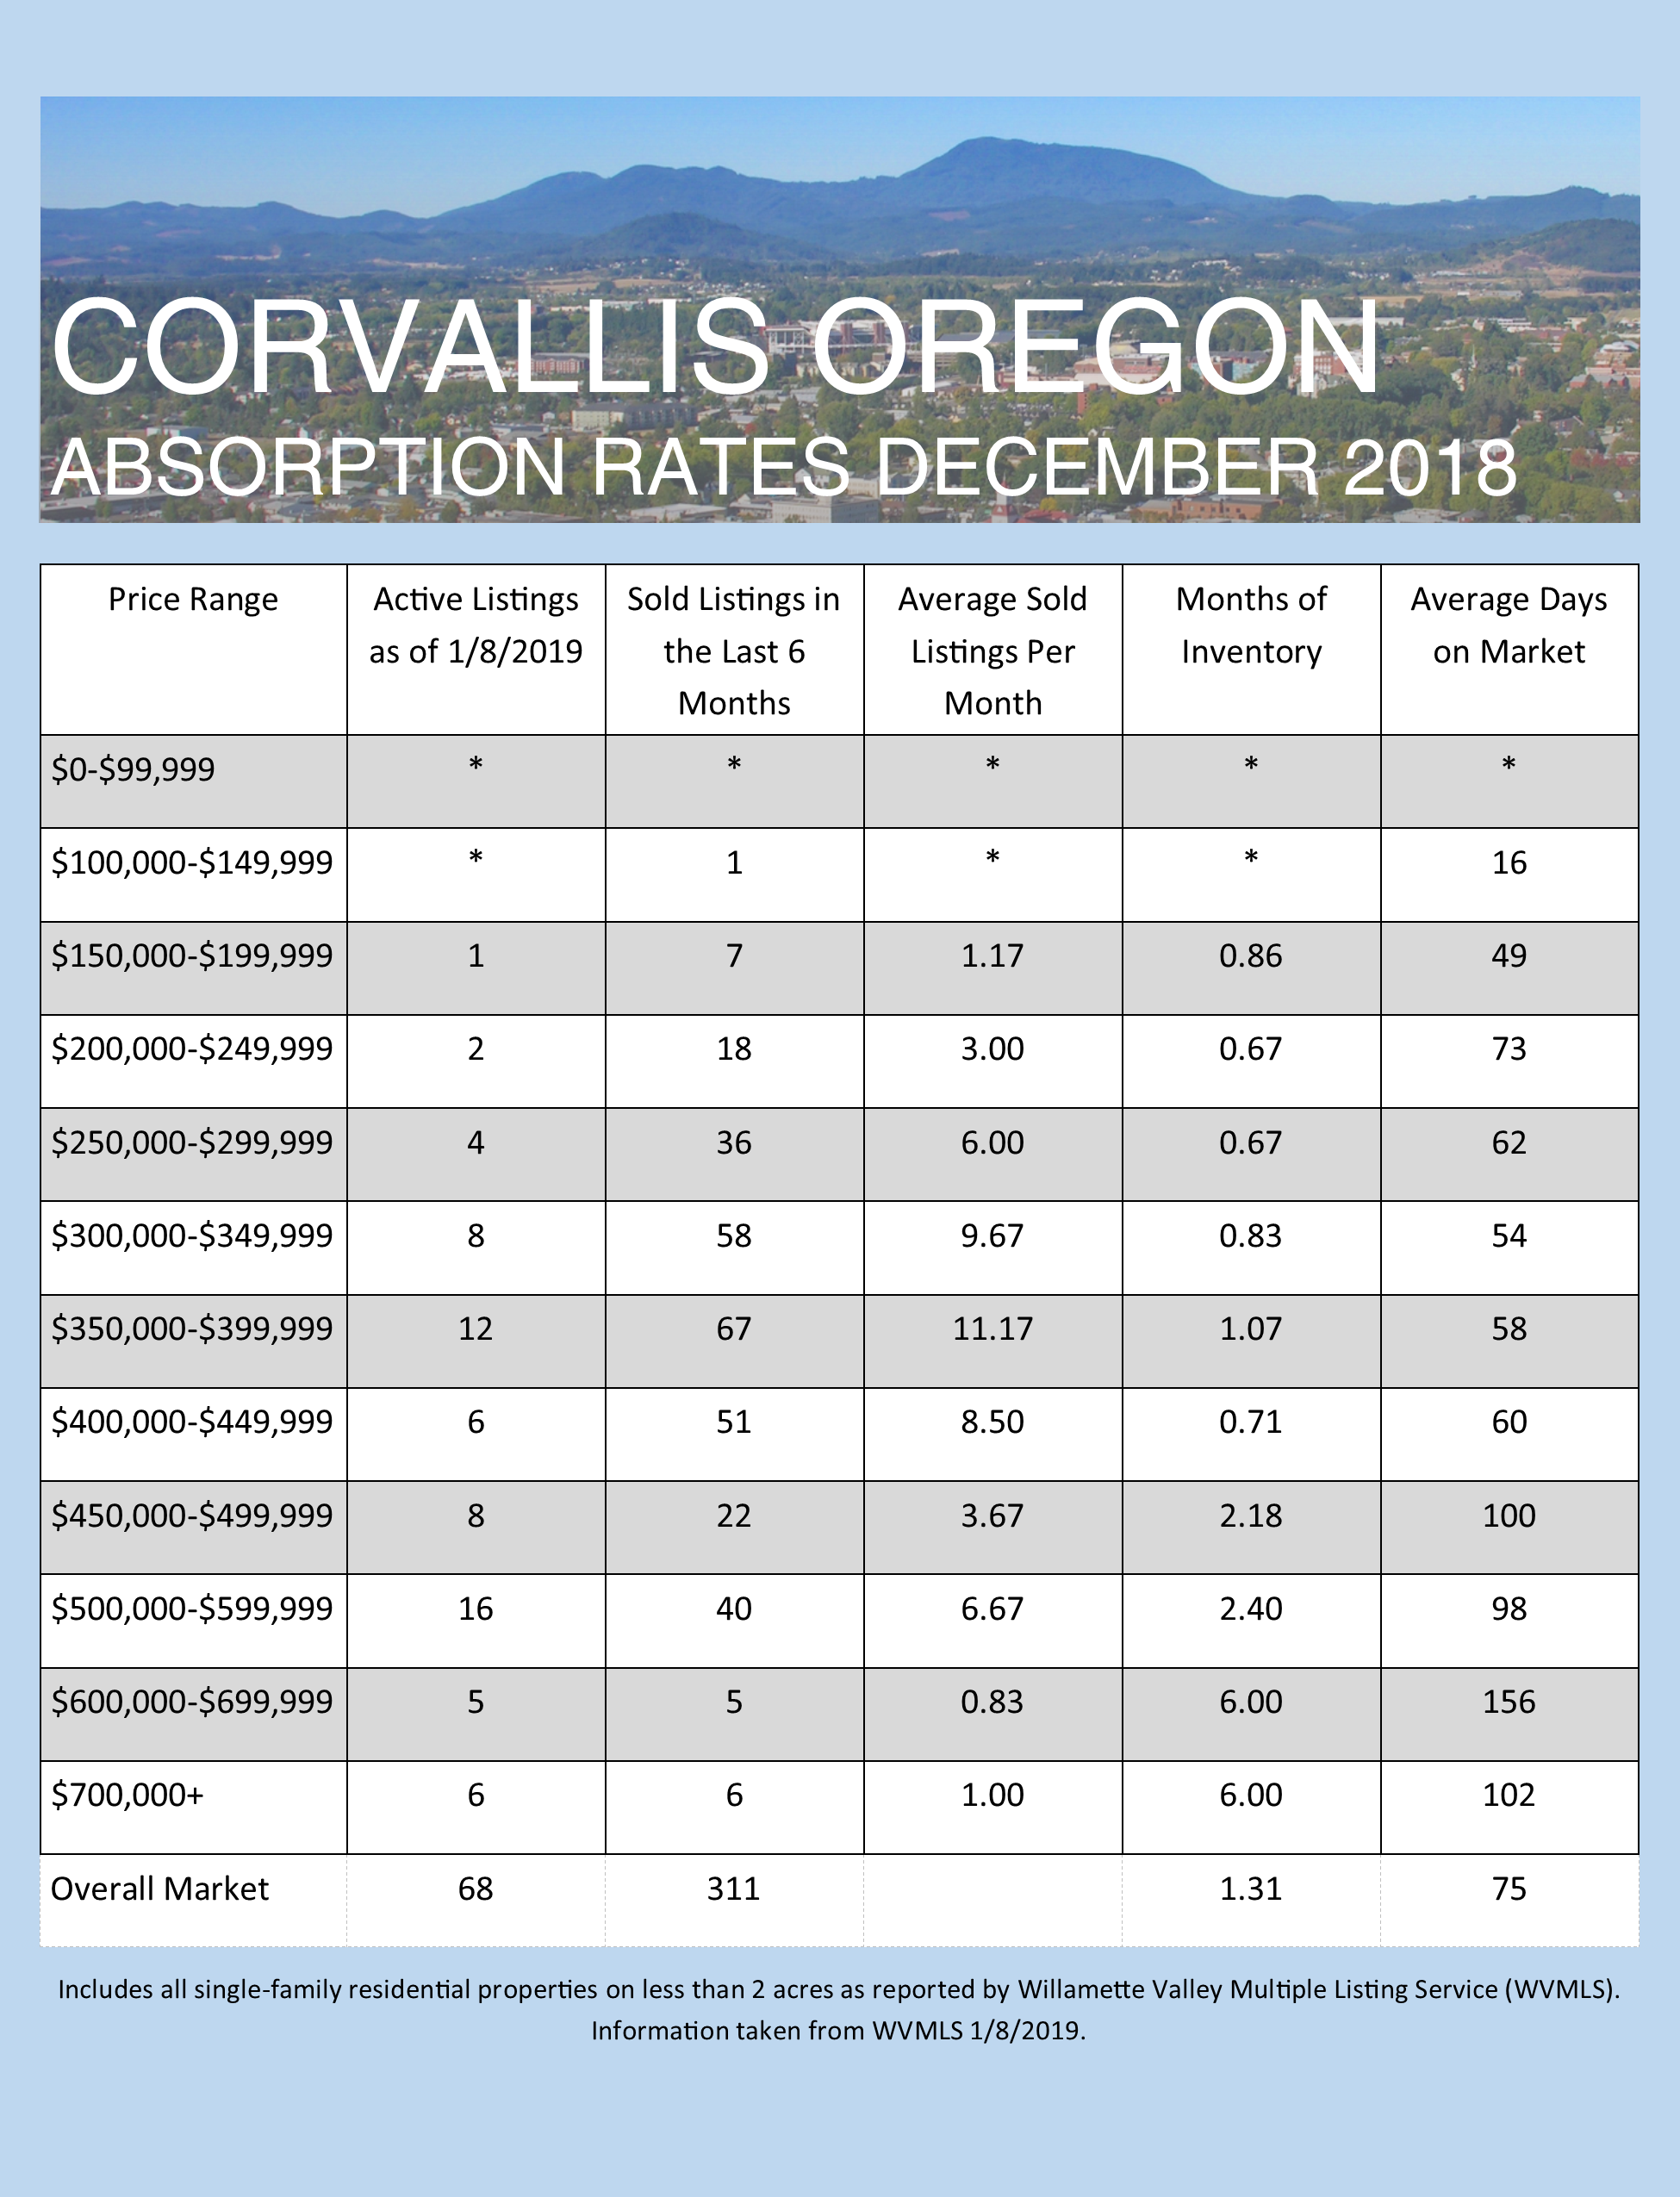 December 2018 Absorption Rates for Albany and Corvallis